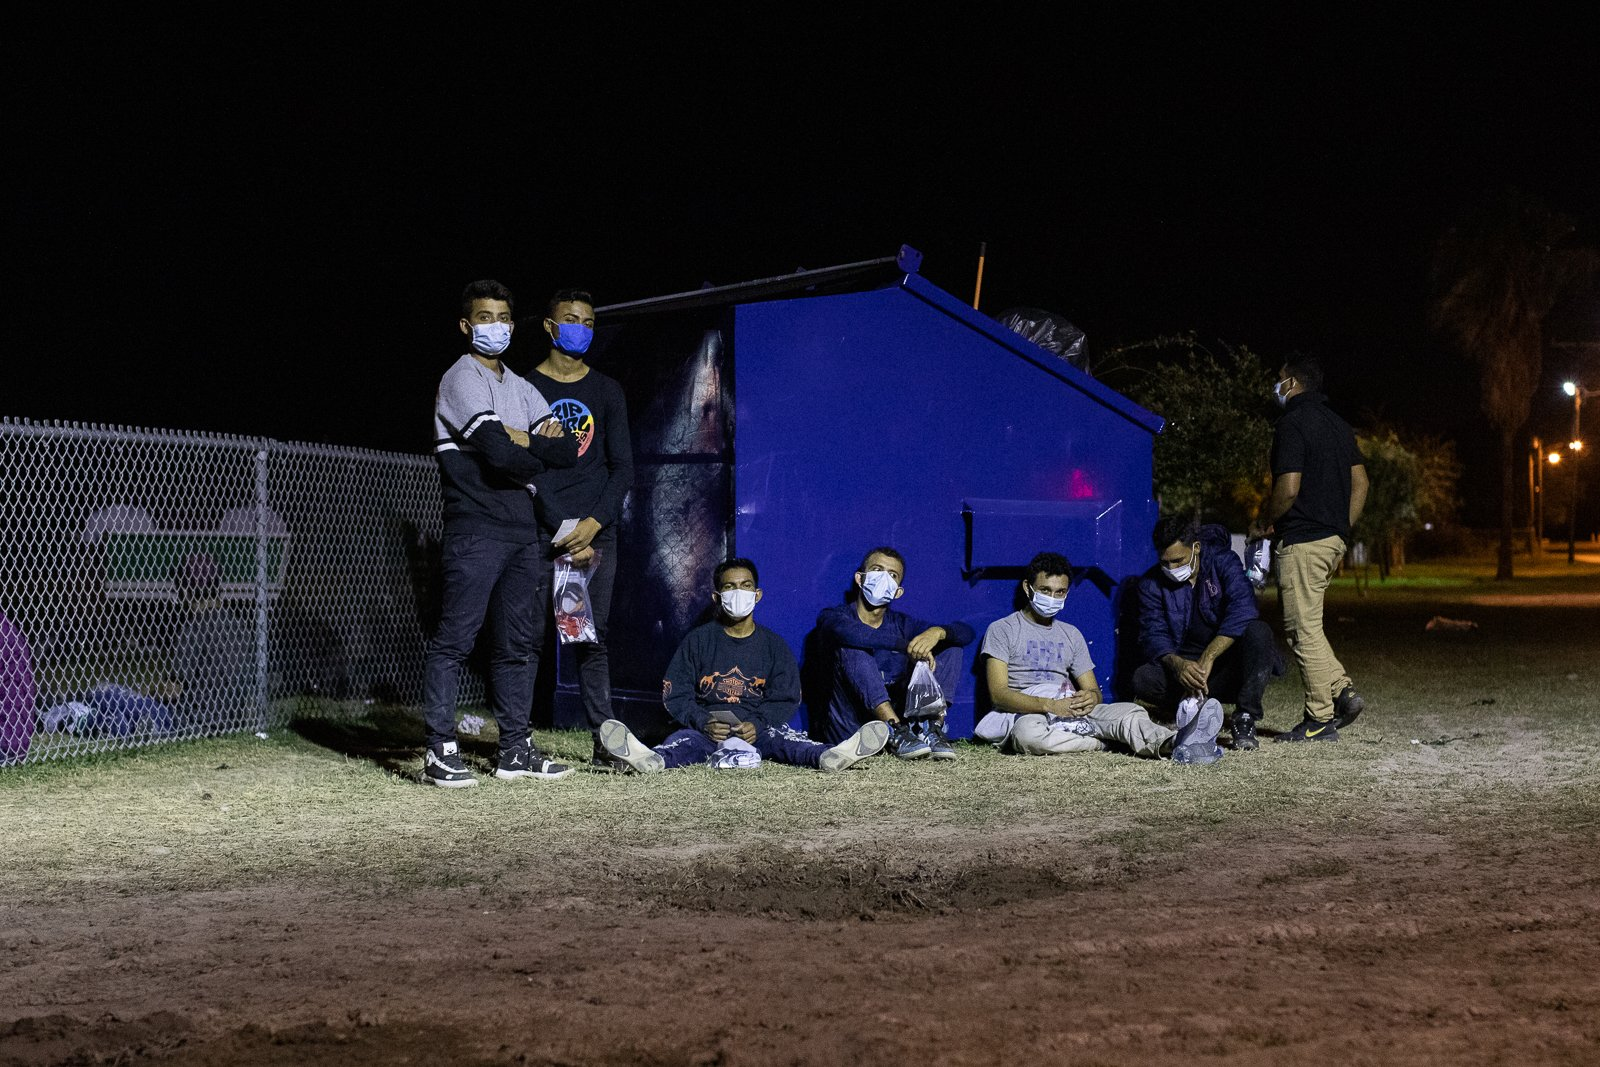 Border officials processed around 100 migrants who surrendered in smaller groups near La Joya, Texas on August 7, 2021. (Kaylee Greenlee – Daily Caller News Foundation)